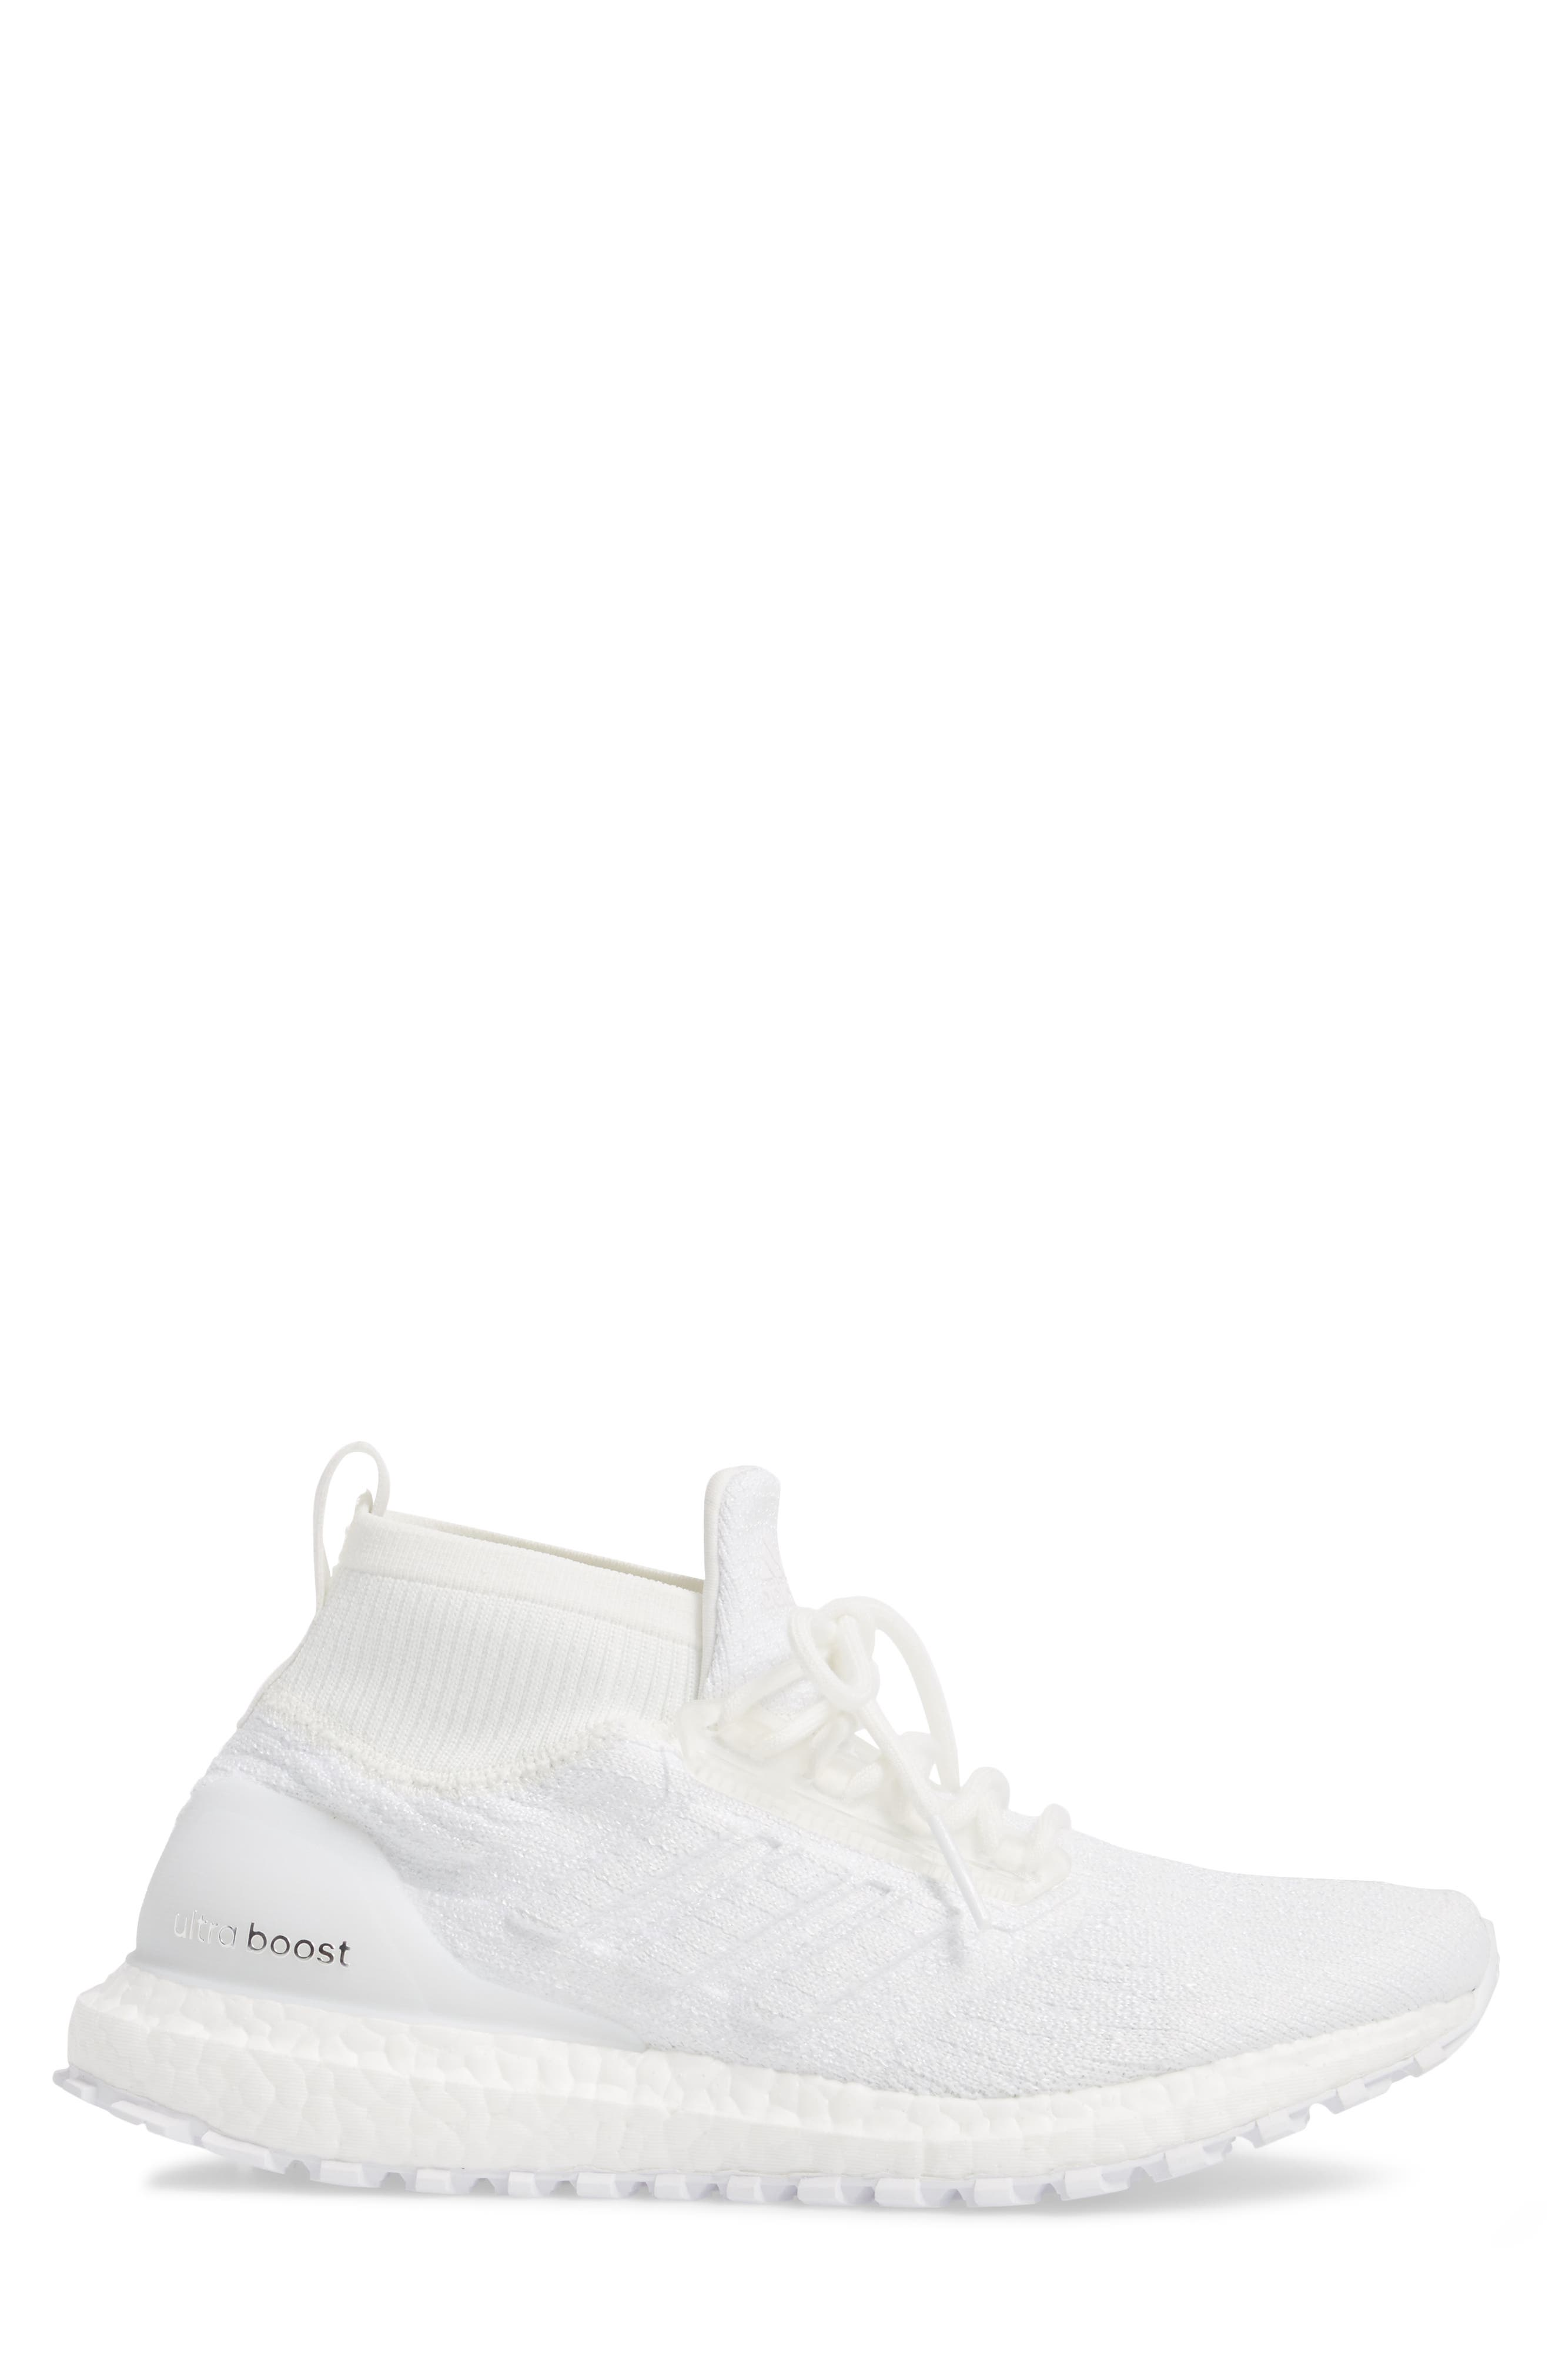 UltraBoost All Terrain Water Resistant Running Shoe,                             Alternate thumbnail 3, color,                             Non-Dyed White